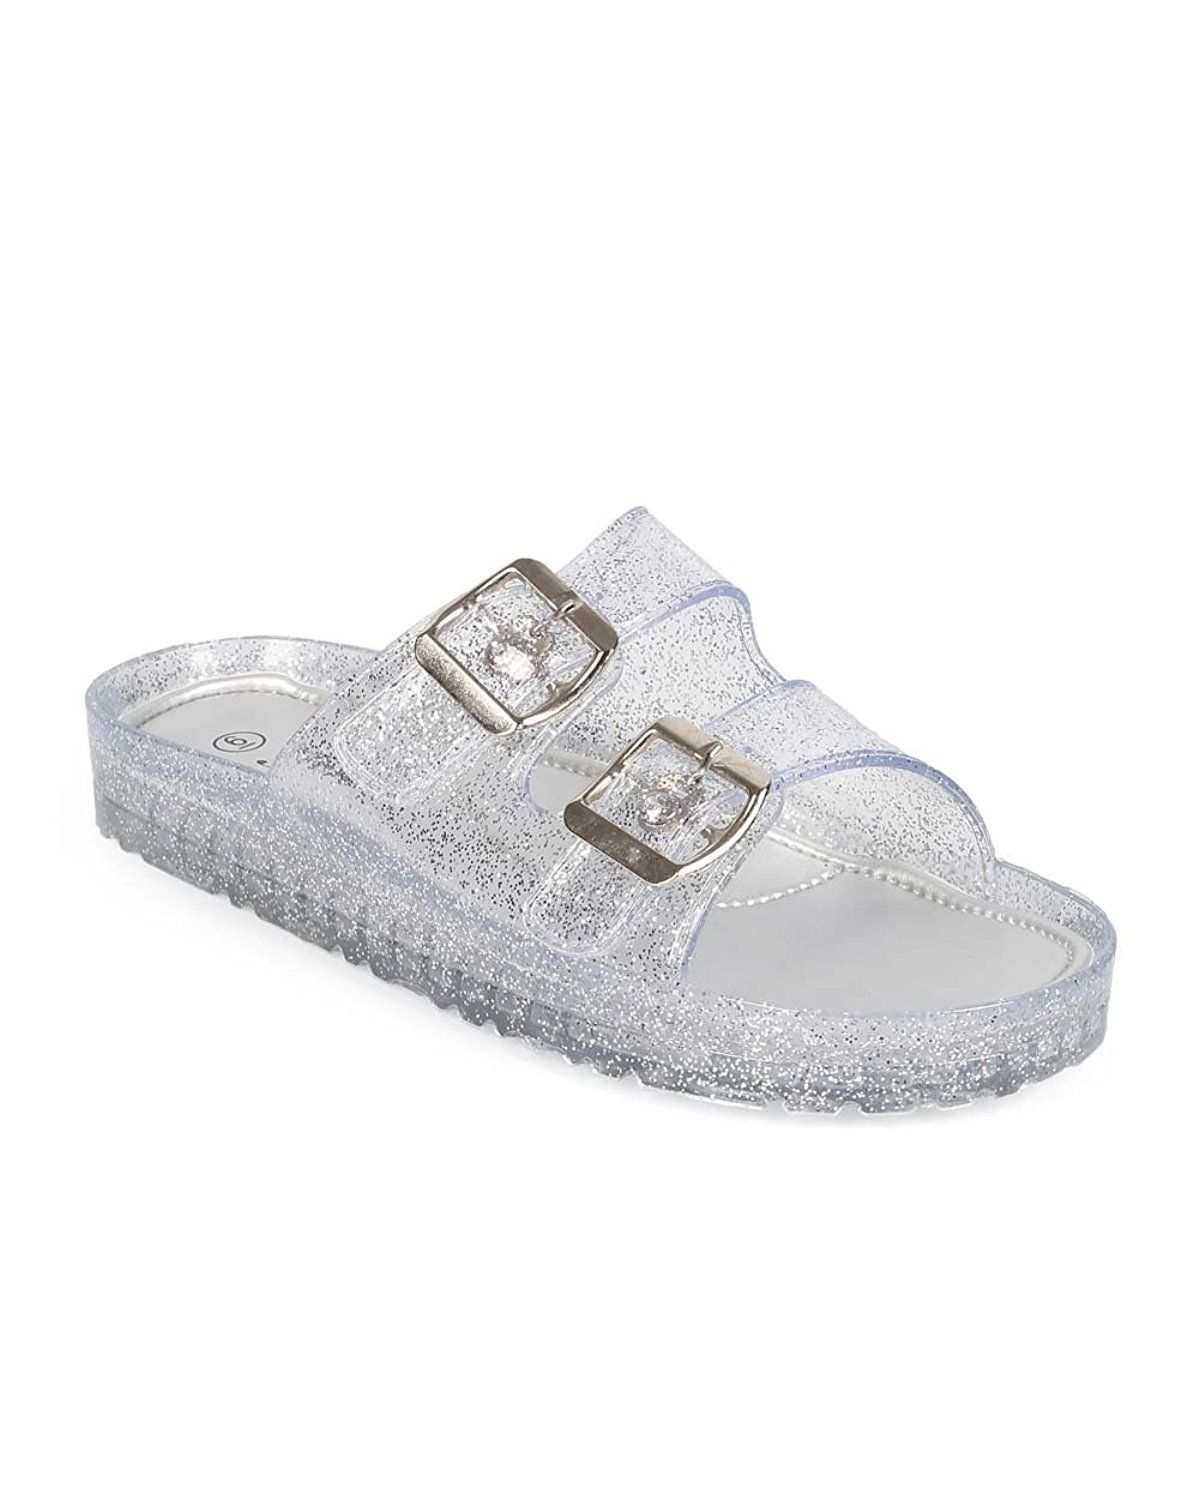 642bf421380b7f Forever EA81 Women Glitter Jelly Open Toe Double Buckle Footbed Sandal -  Silver   Wow! I love this. Check it out now!   Jelly Sandals